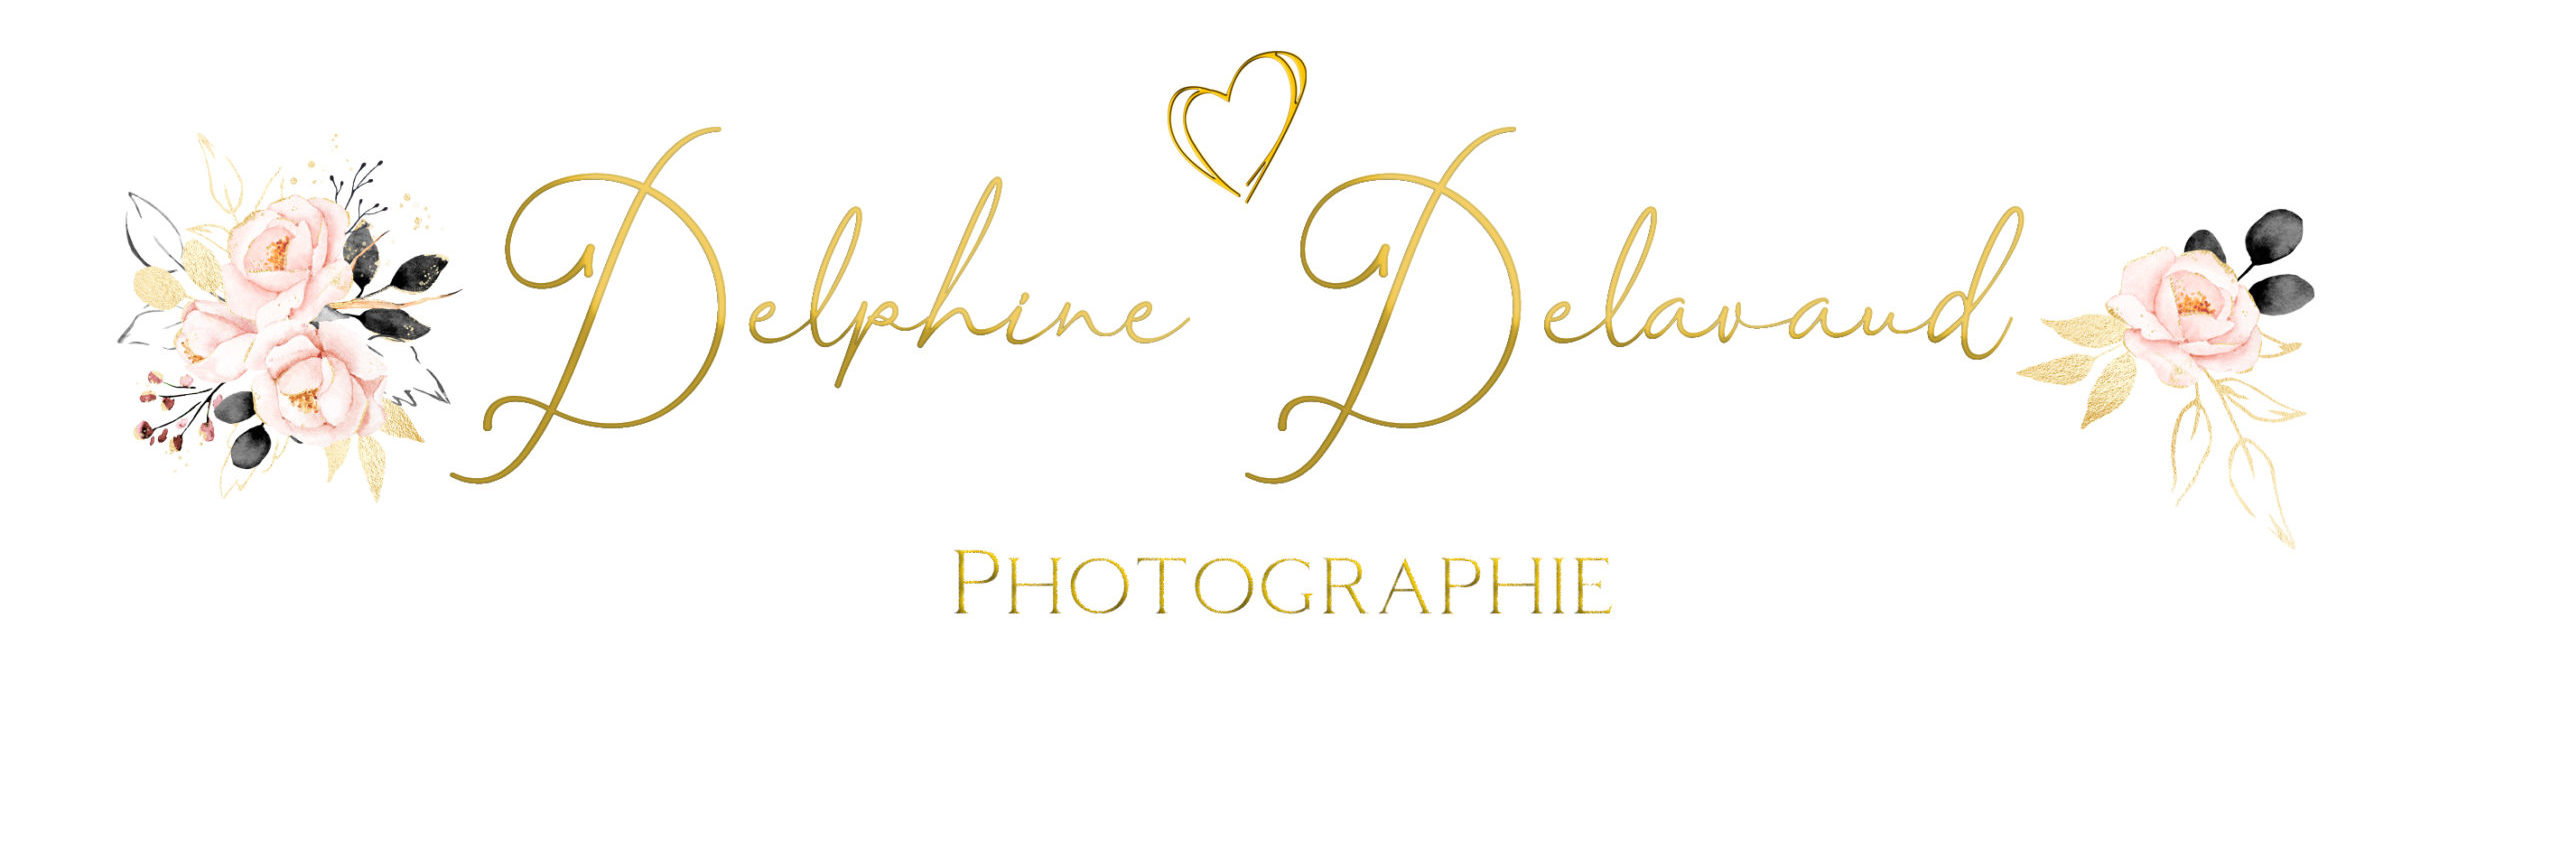 Logo for Delphine Delavaud Photographie